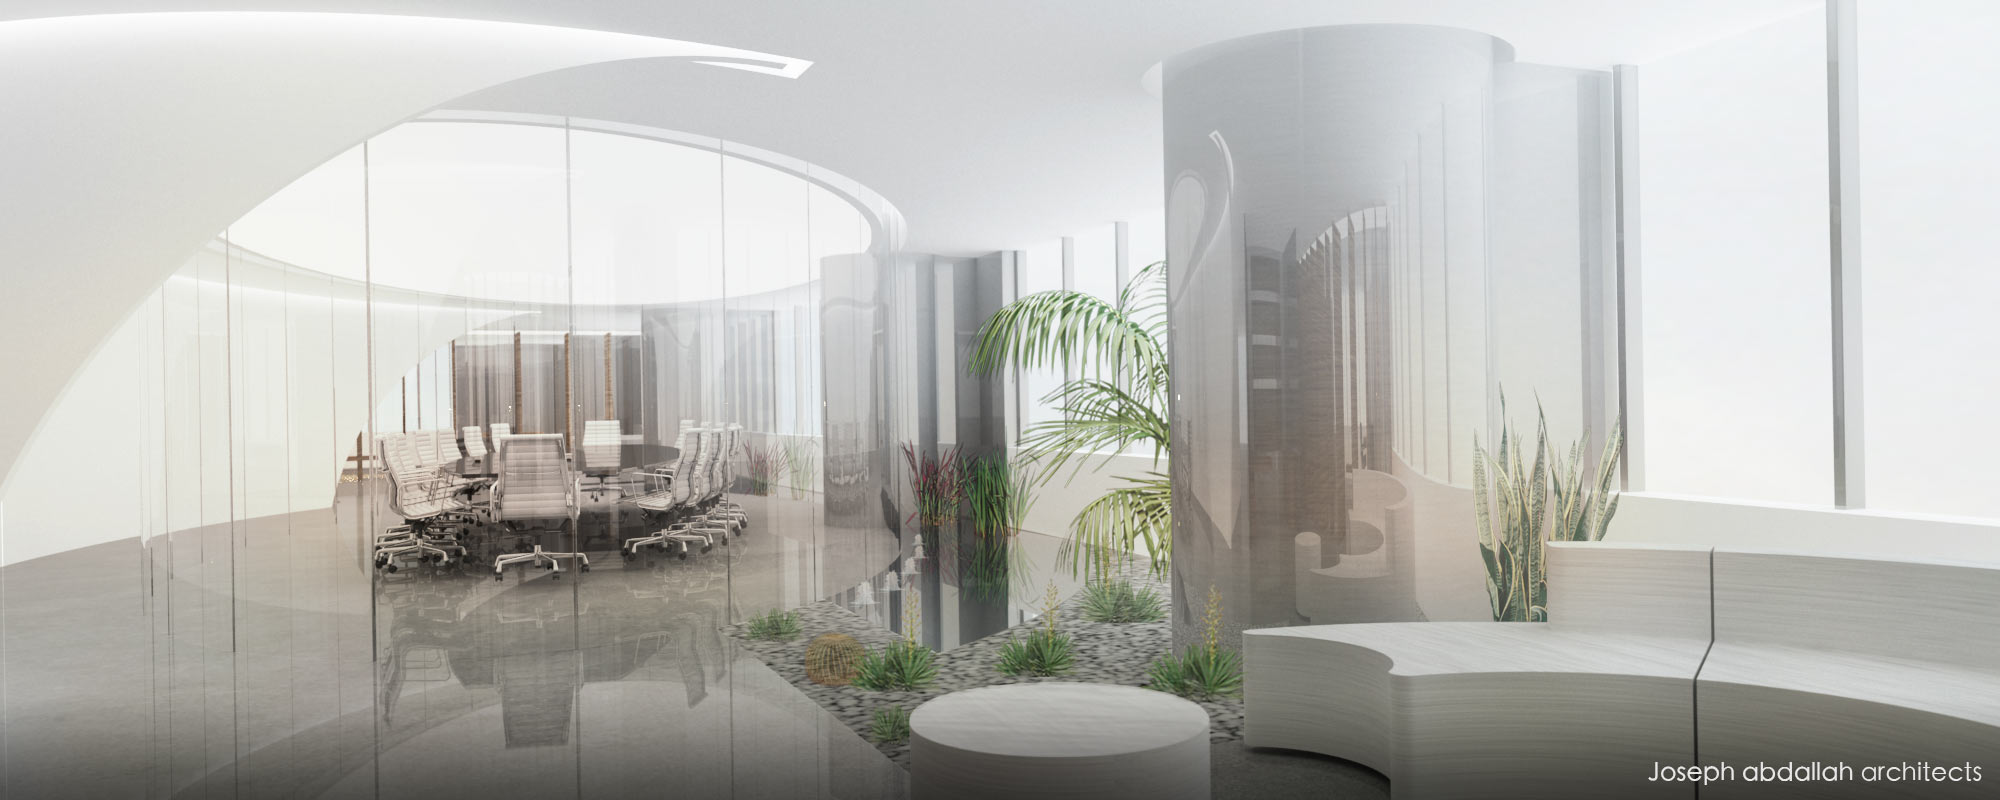 international-airfinance-corporation-iafc-mazaya-tower-office-dubai-joseph-abdallah-architects-interior-design-4